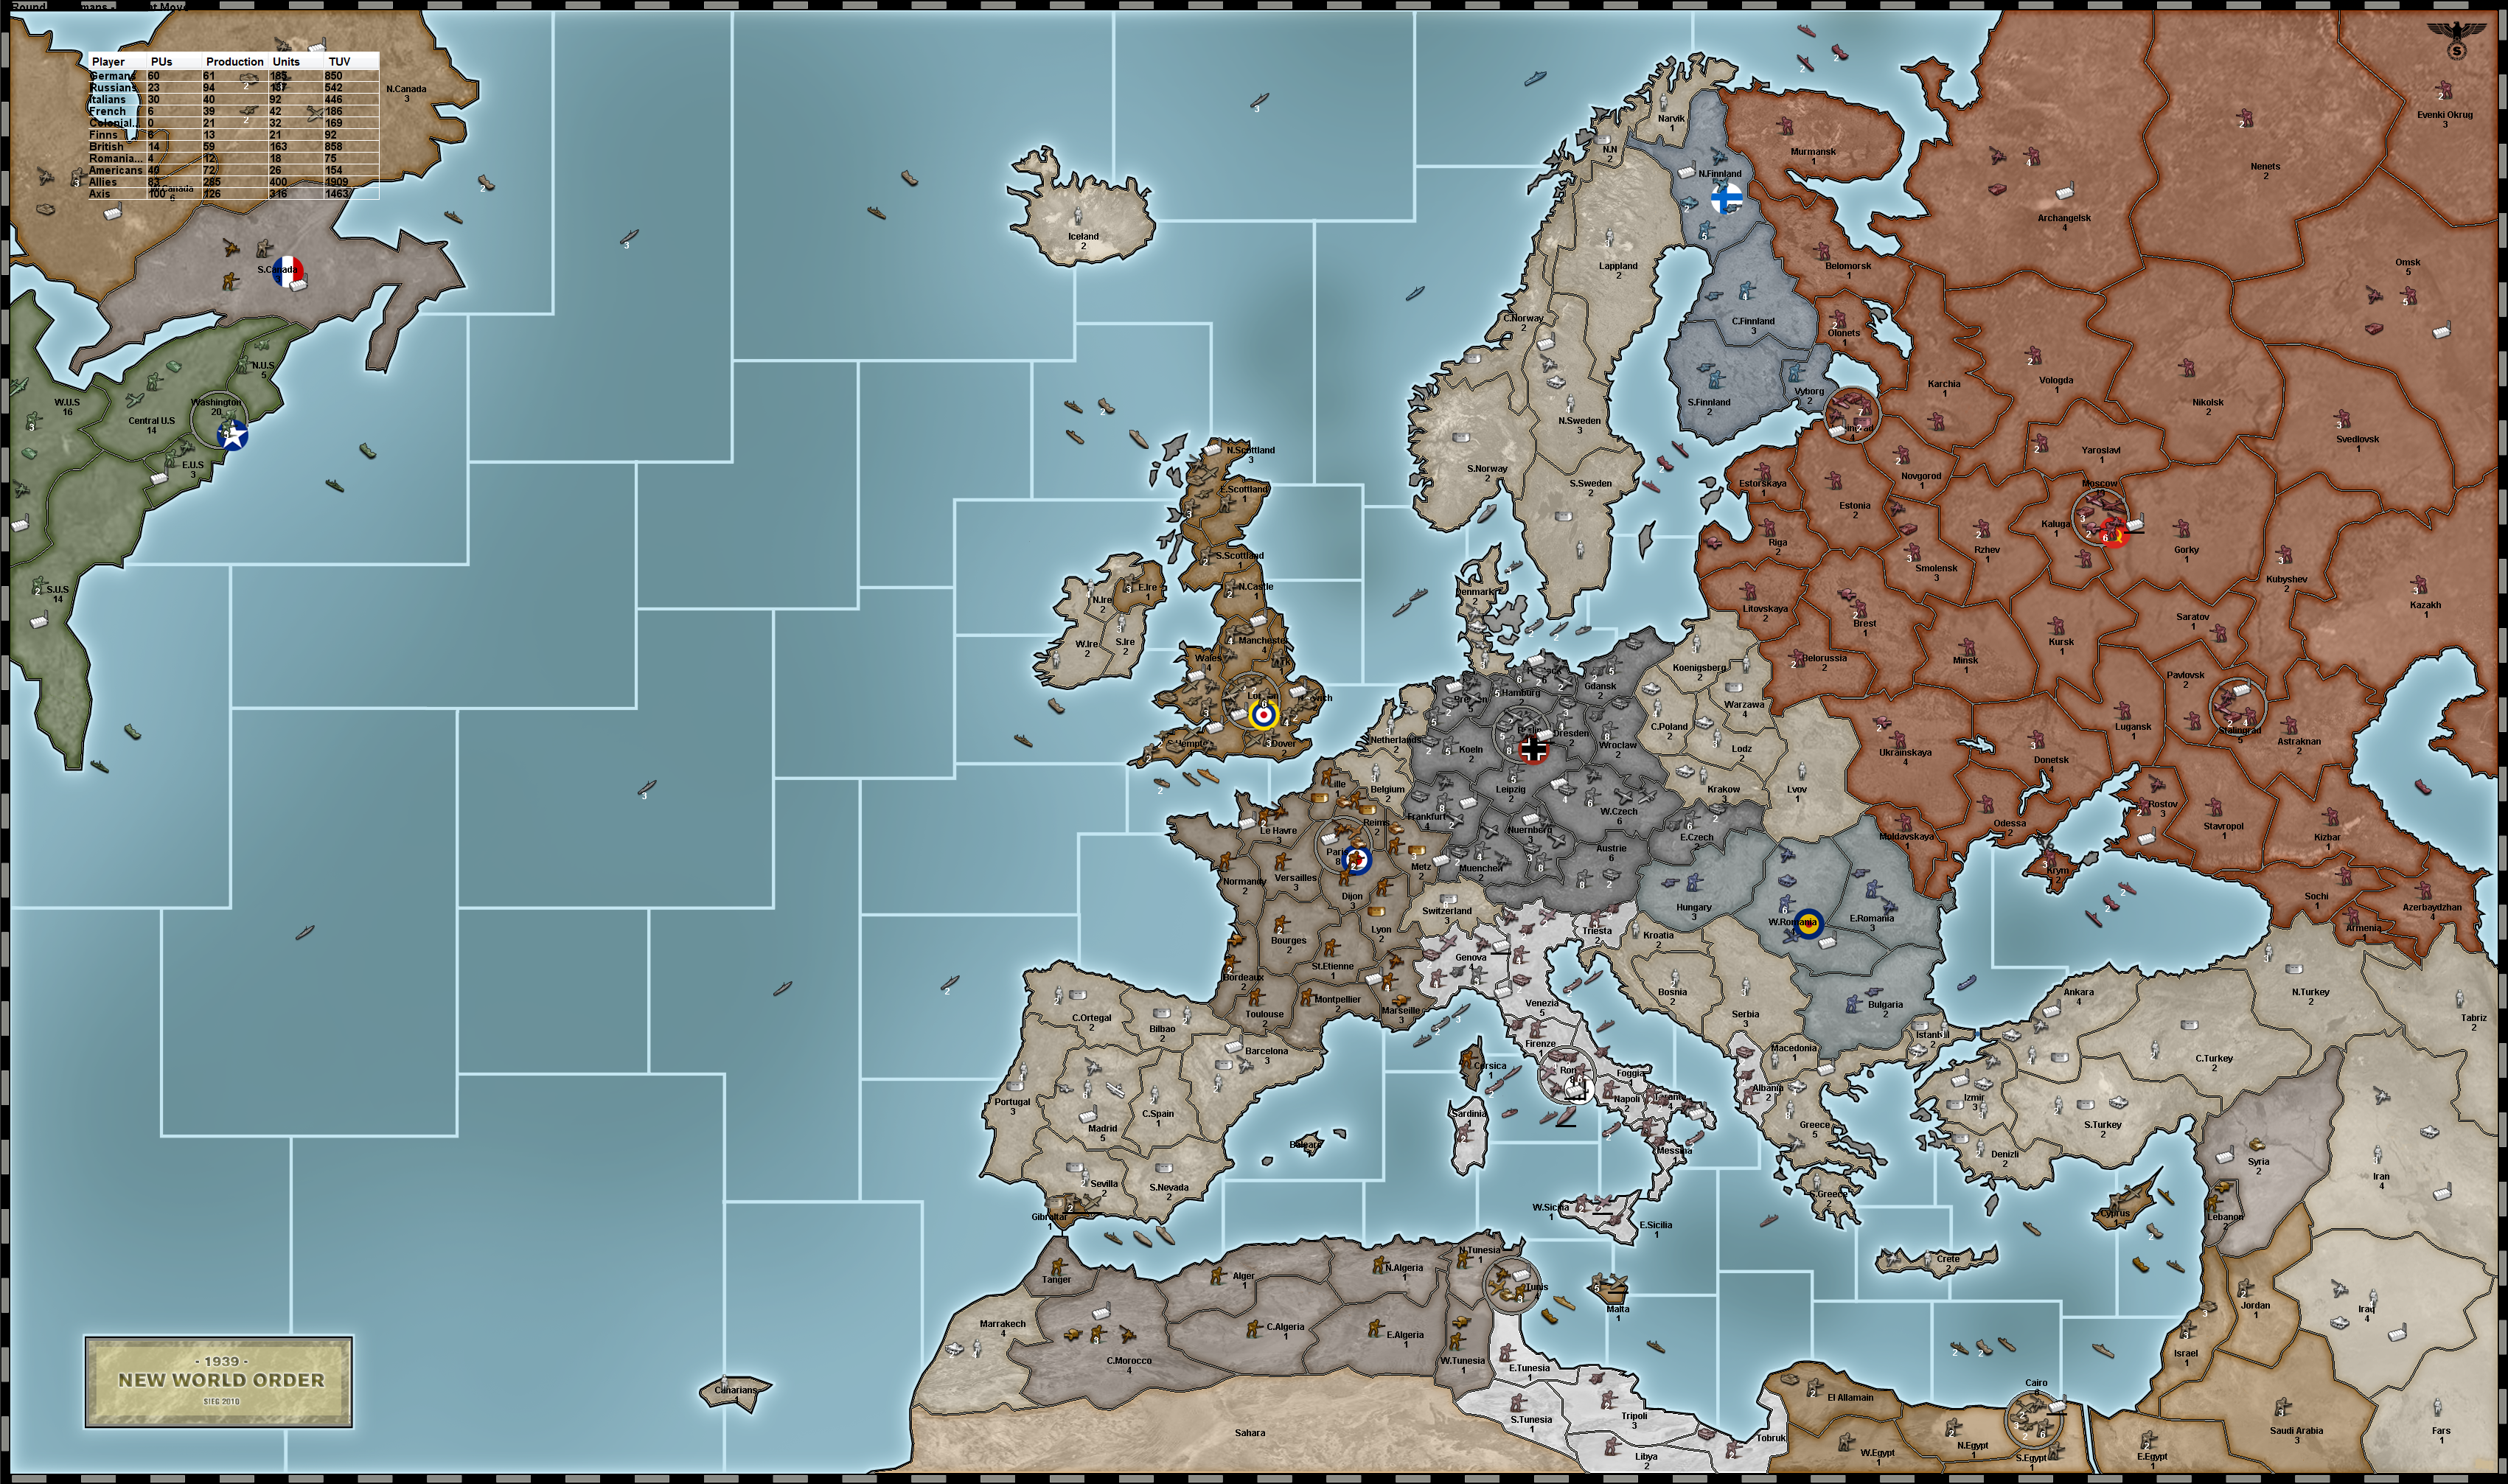 New World Order 2 | Axis & Allies Wiki | FANDOM powered by Wikia